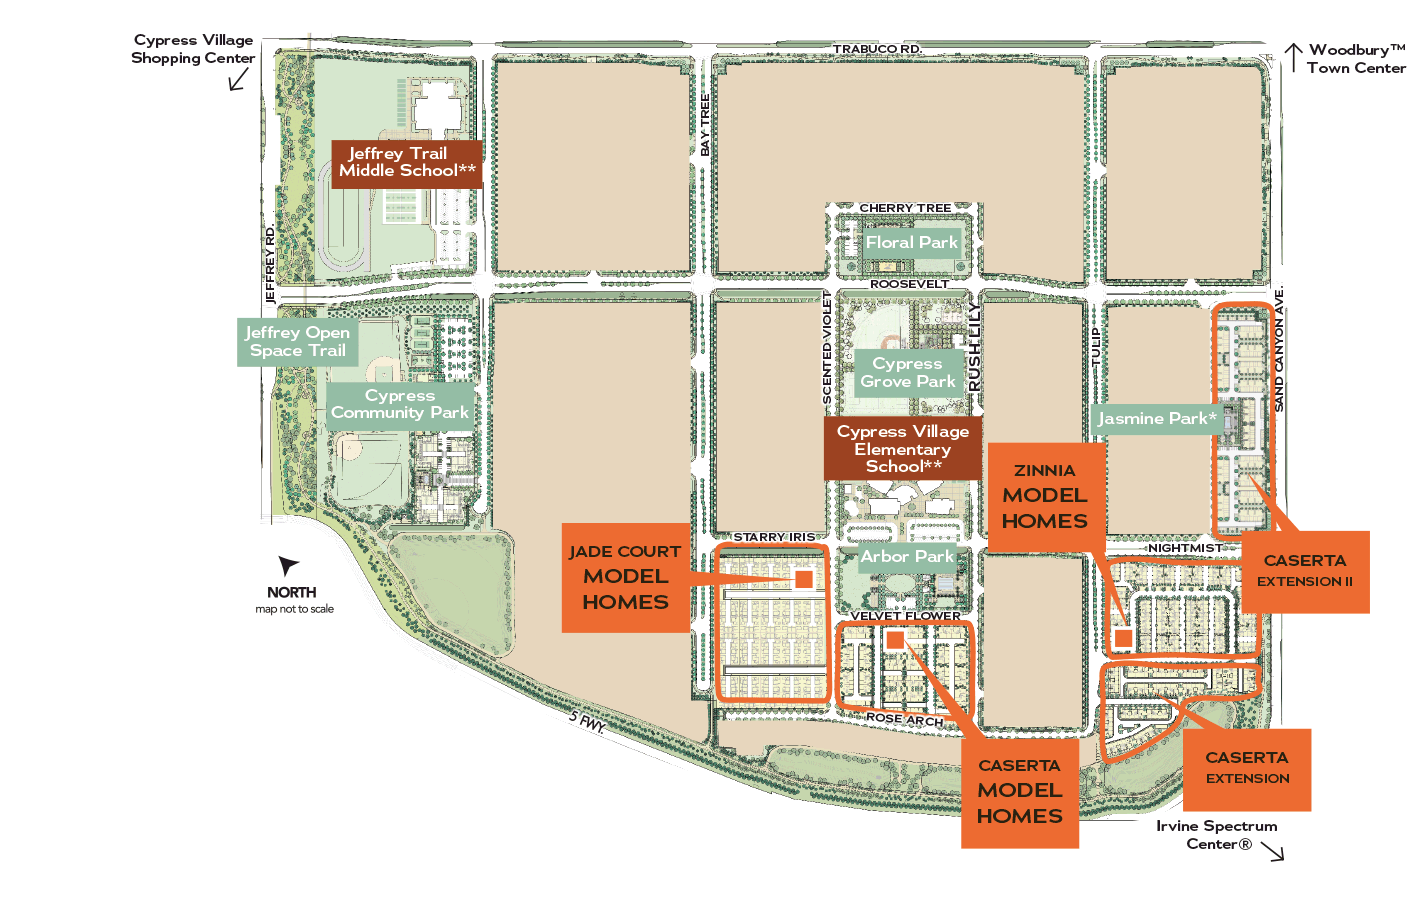 Cypress Village Site Map